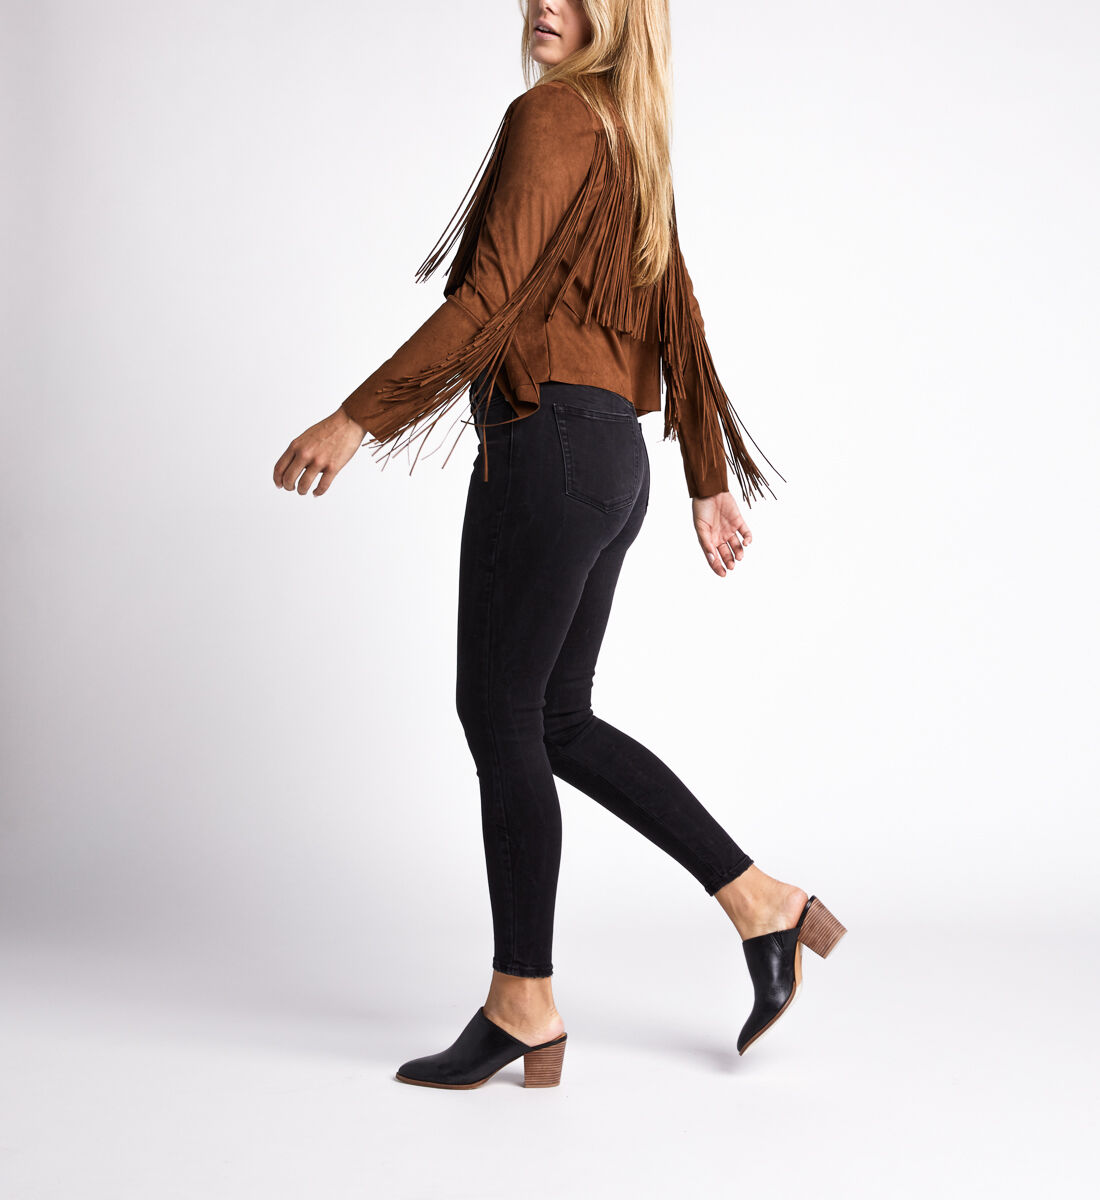 Most Wanted Mid Rise Skinny Leg Jeans,Black Side